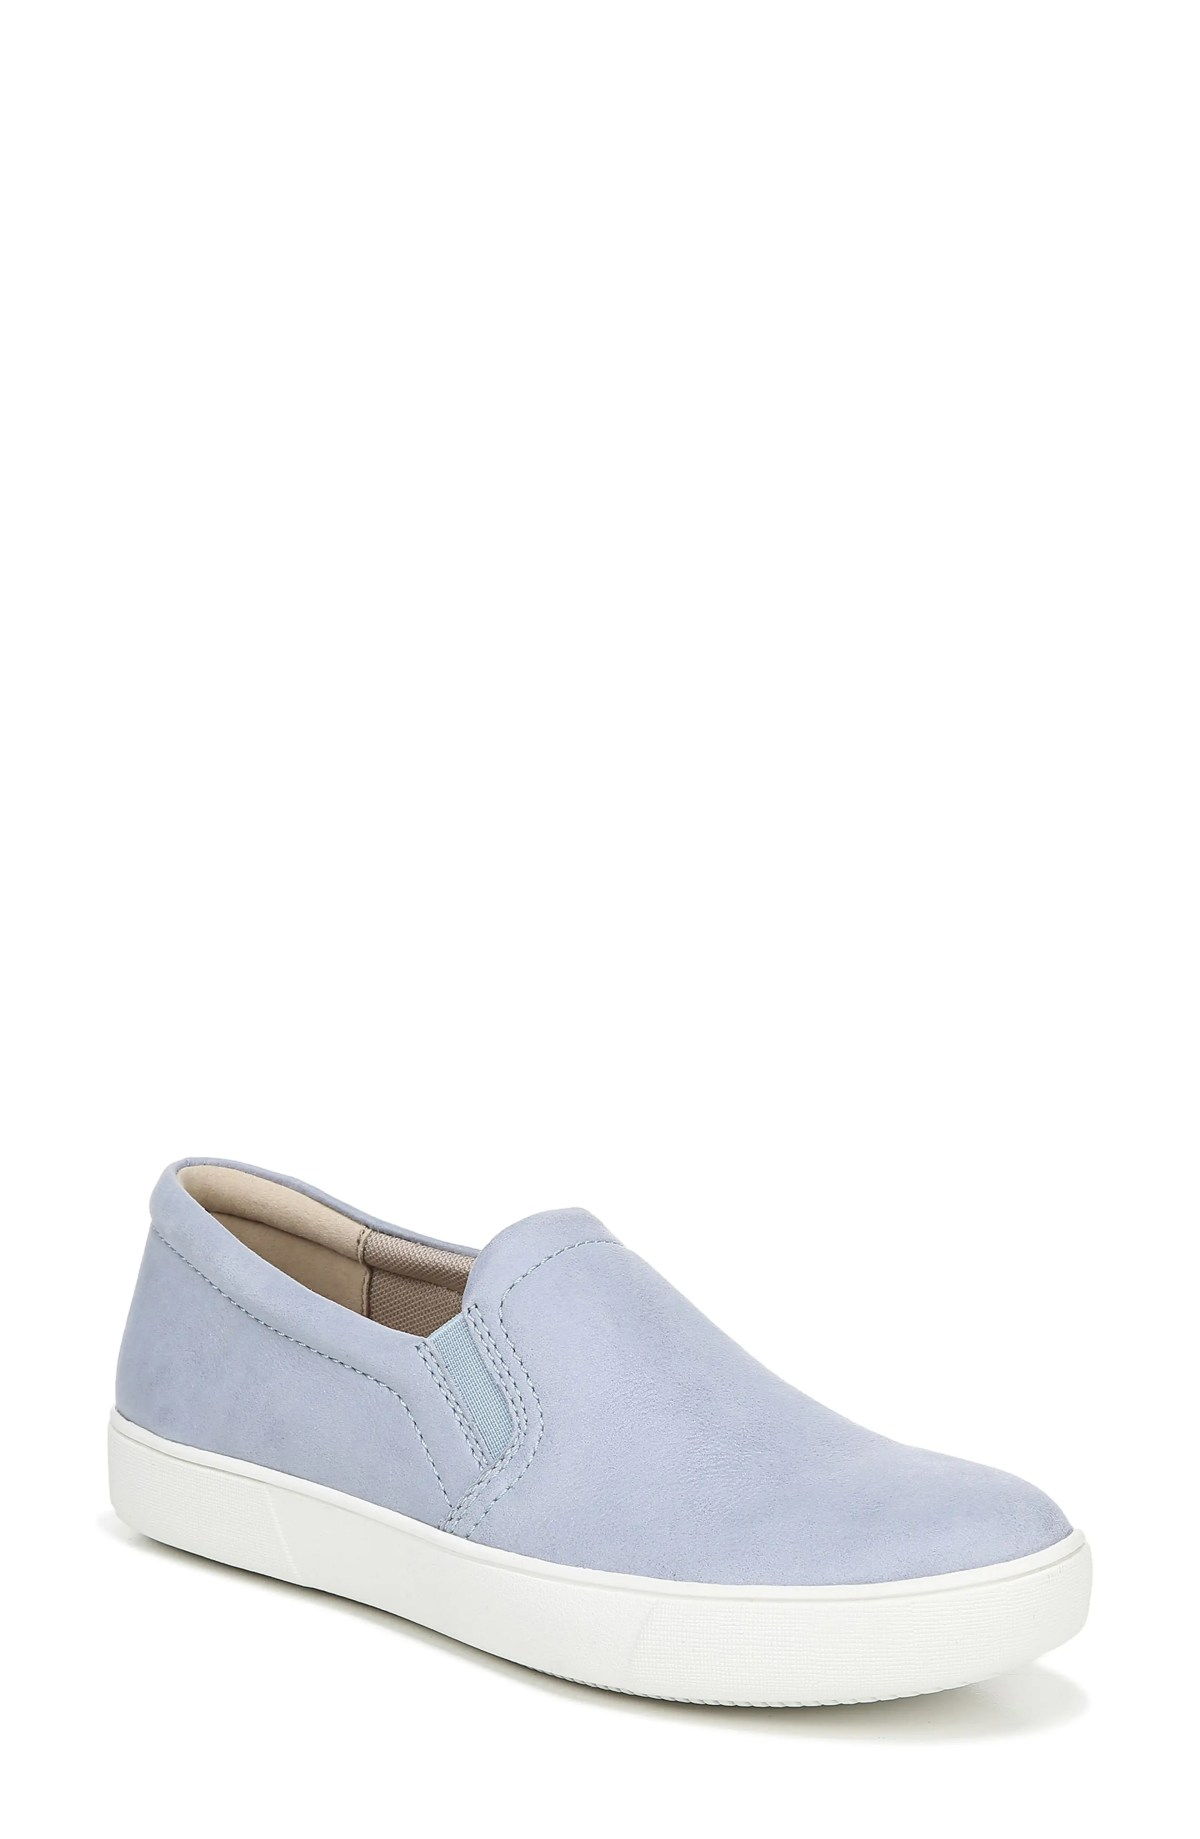 NATURALIZER Marianne Slip-On Sneaker, Main, color, HARBOR MIST LEATHER